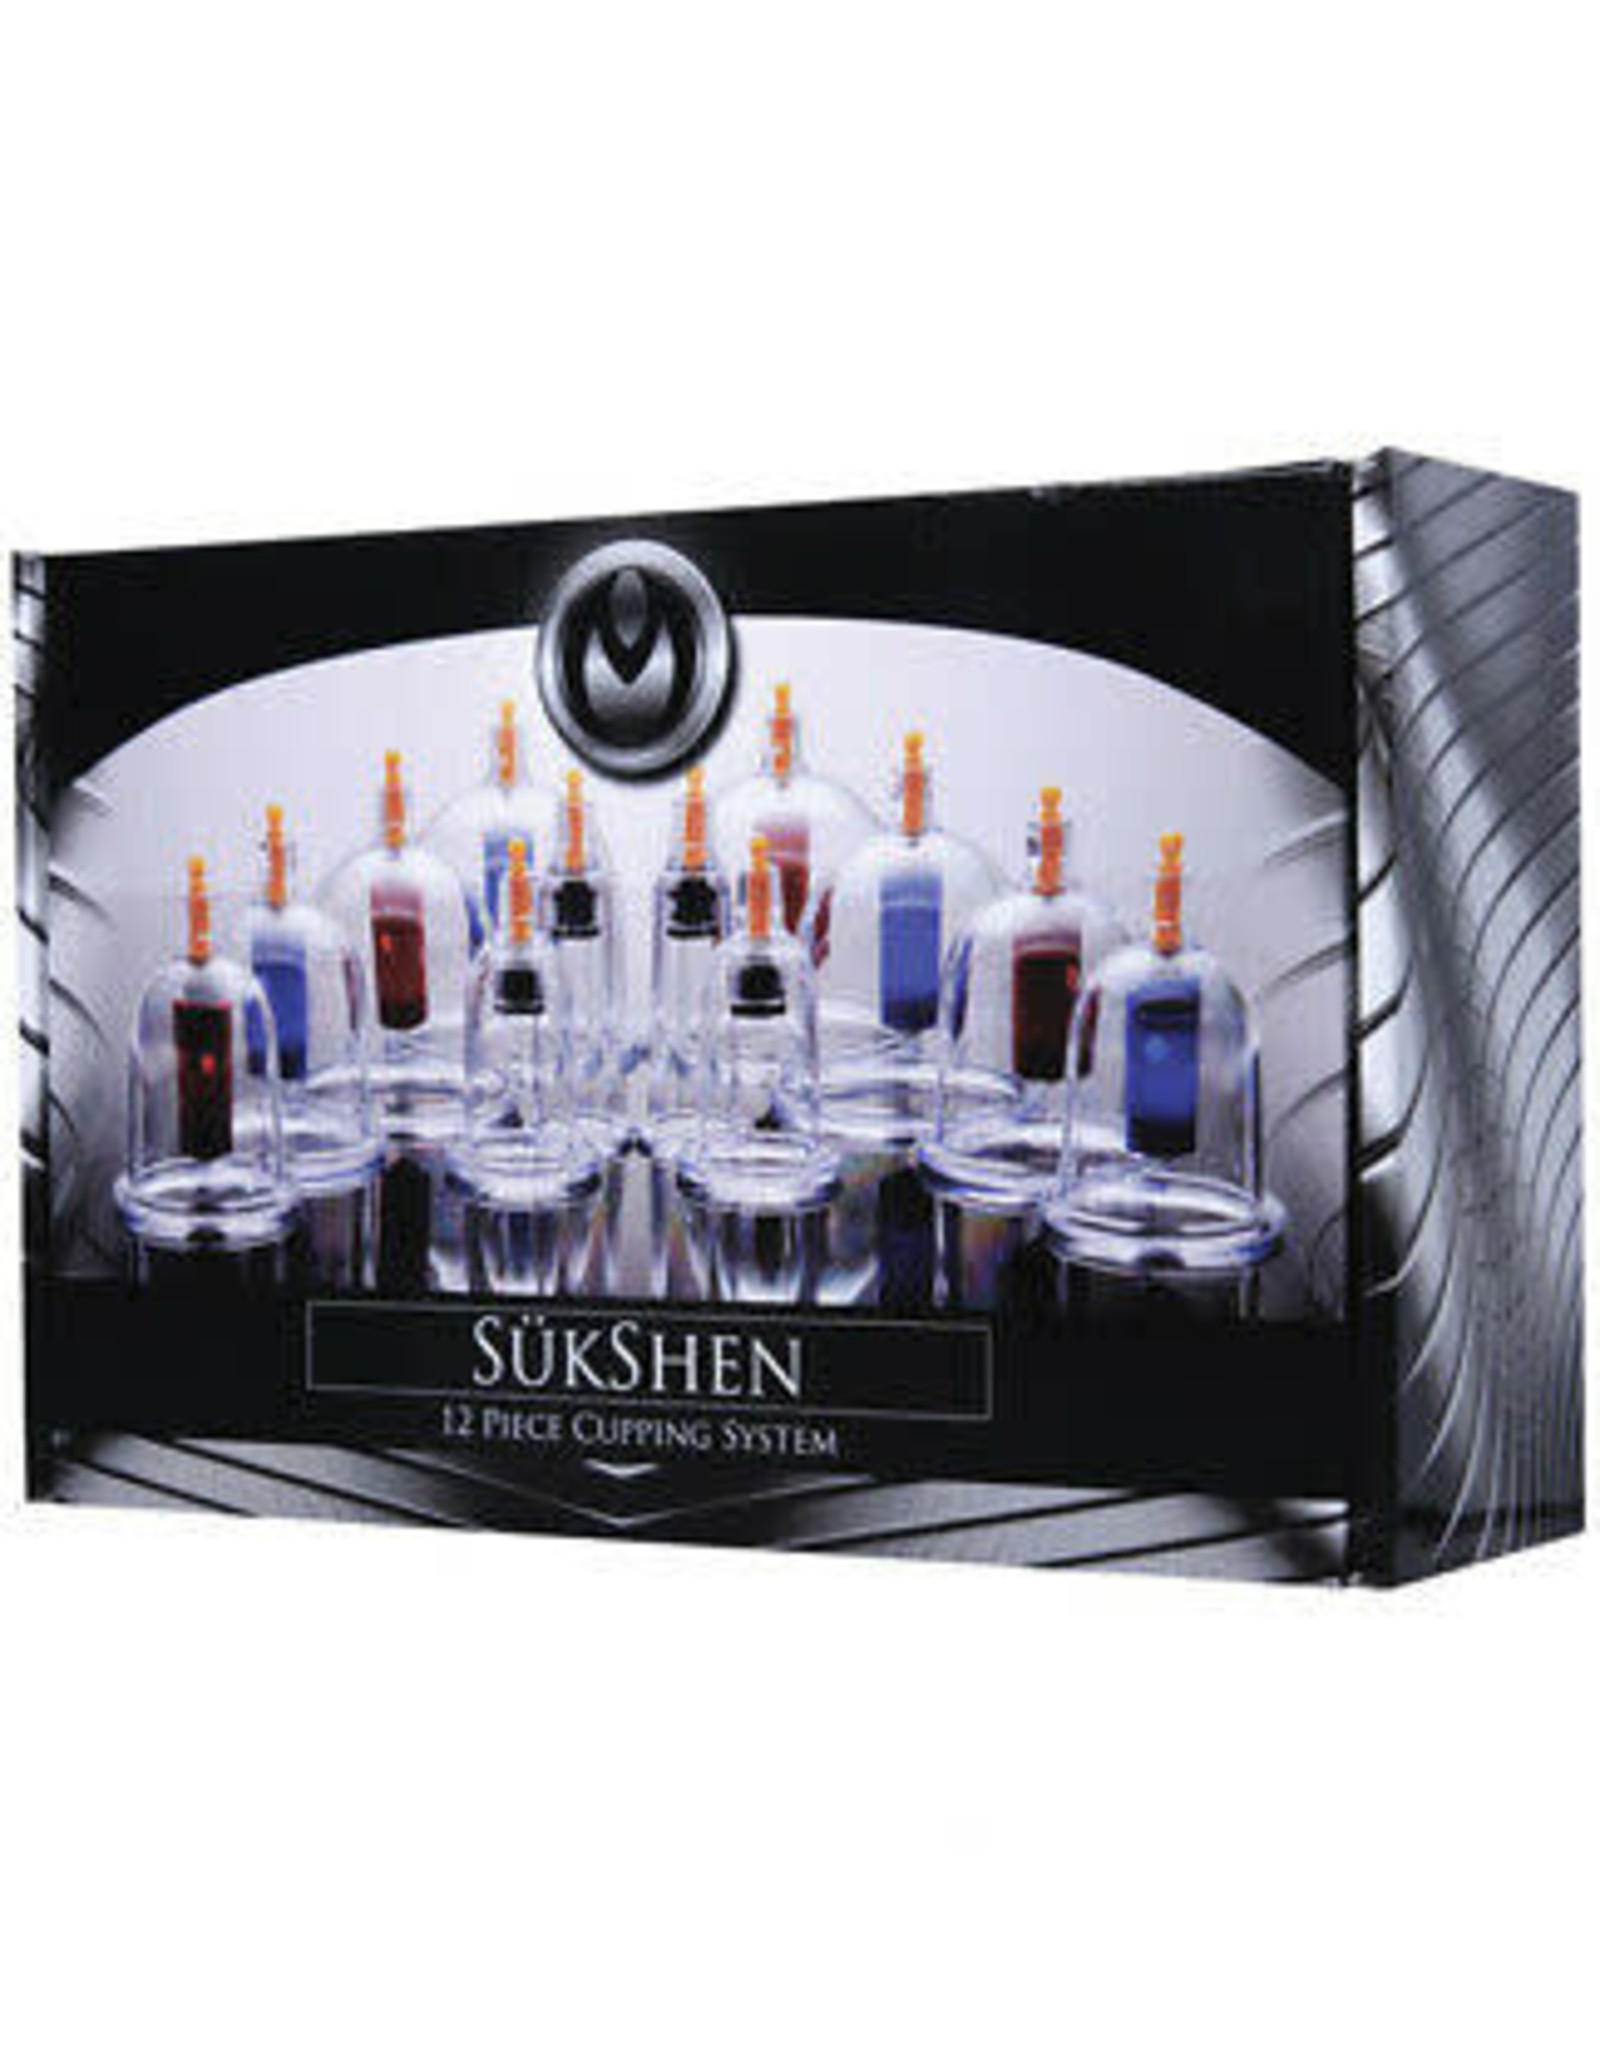 MASTER SERIES - SUKSHEN - 12 PIECE CUPPING SYSTEM